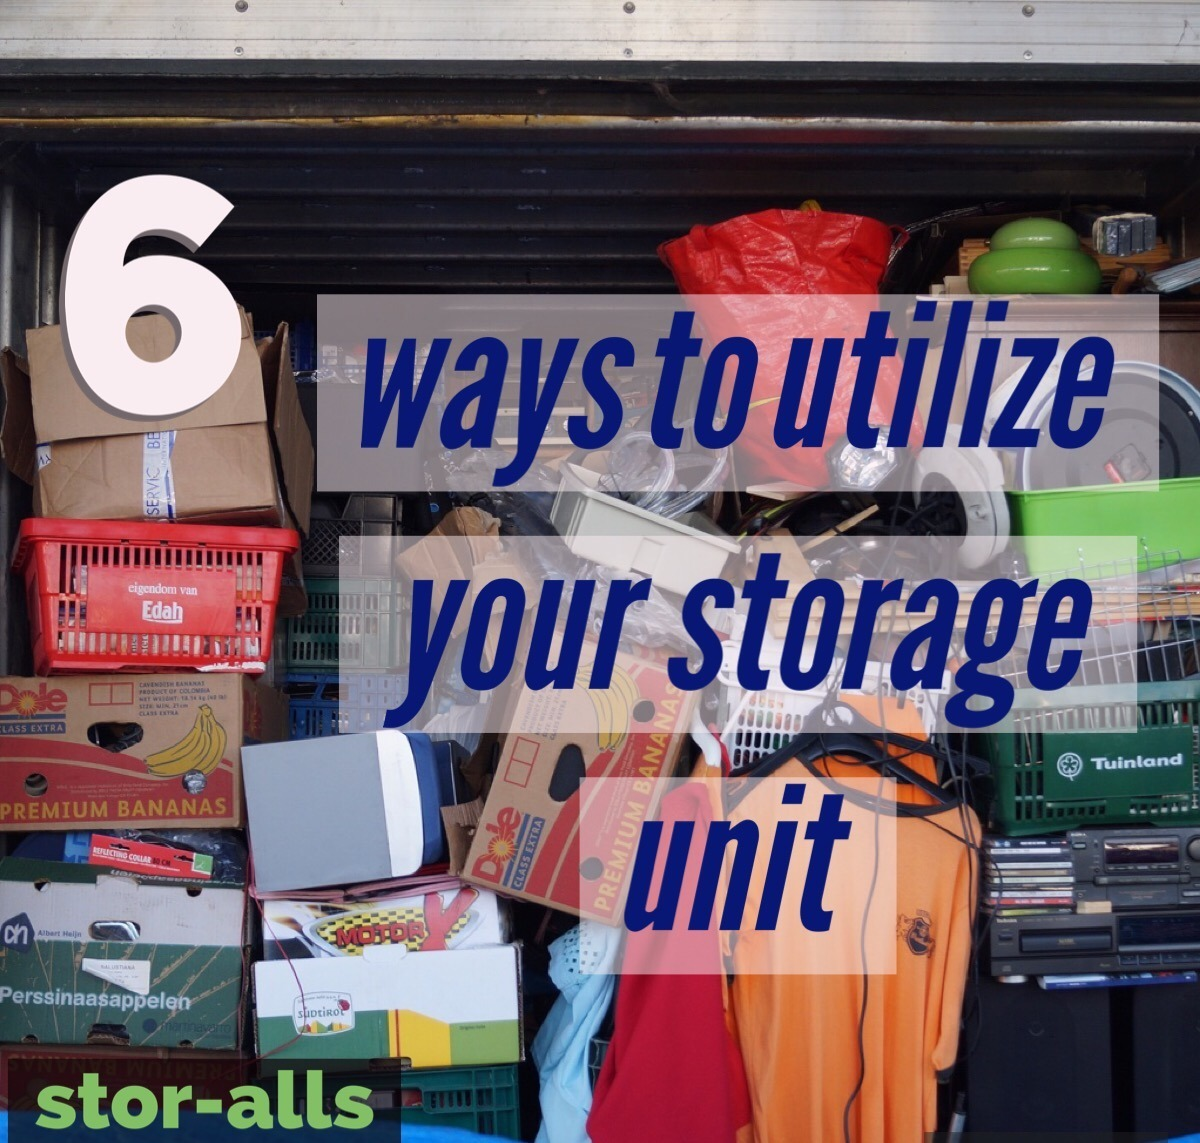 6 Ways to Utilize Your Storage Unit